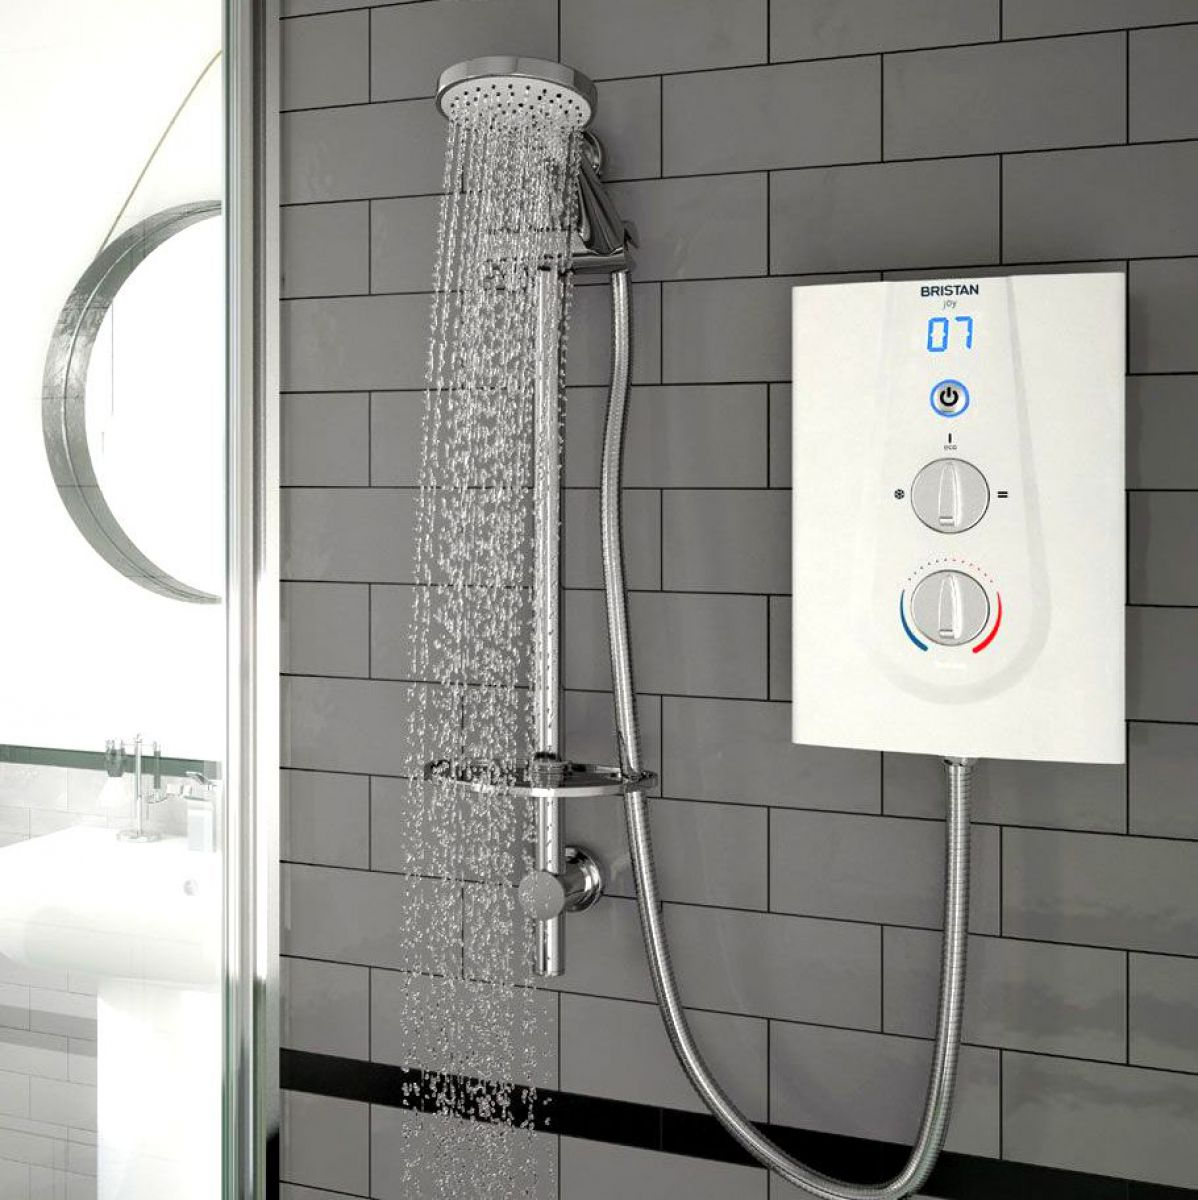 picture of an electric shower